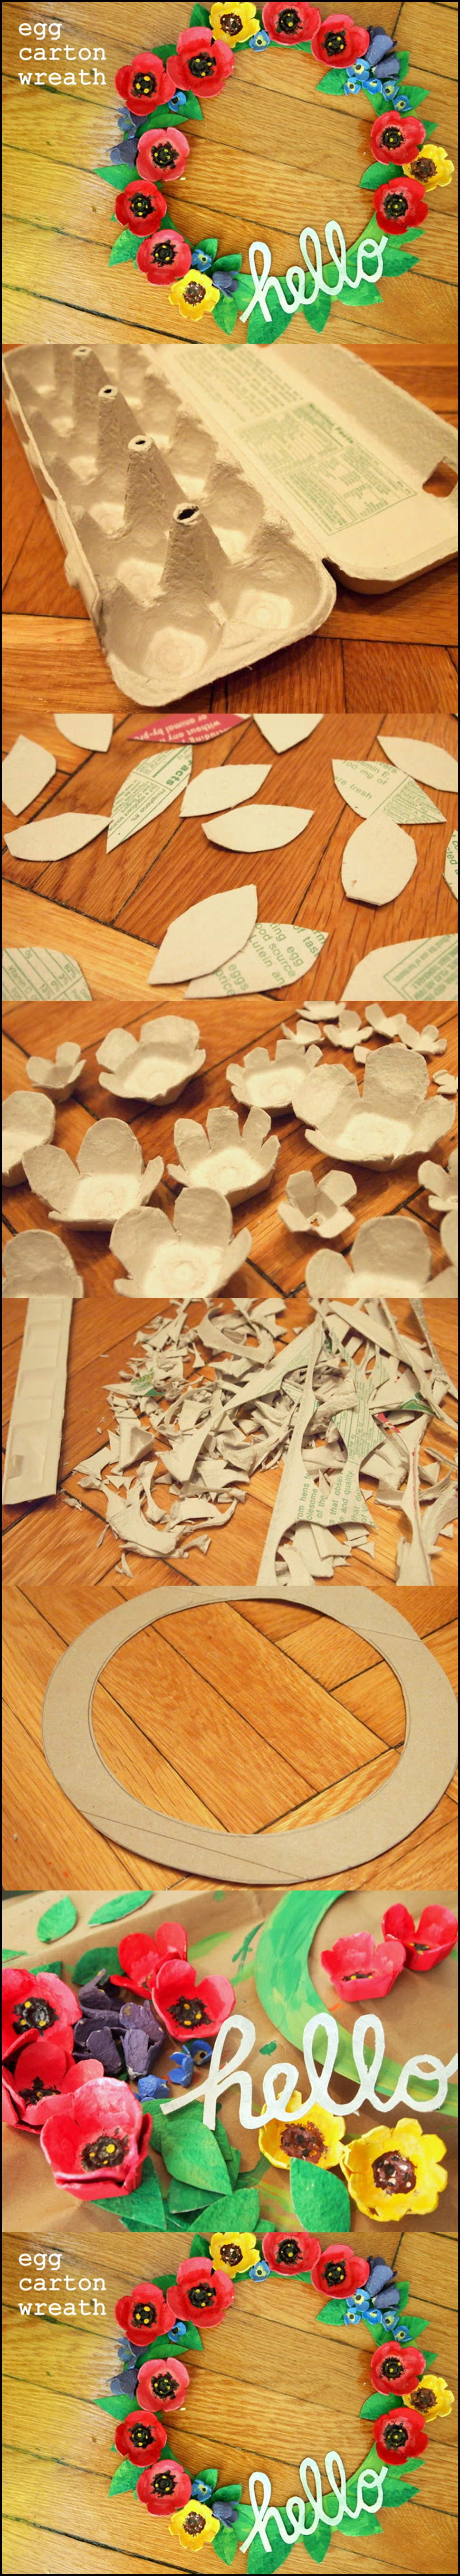 Egg carton wreath m Wonderful DIY egg carton wreath